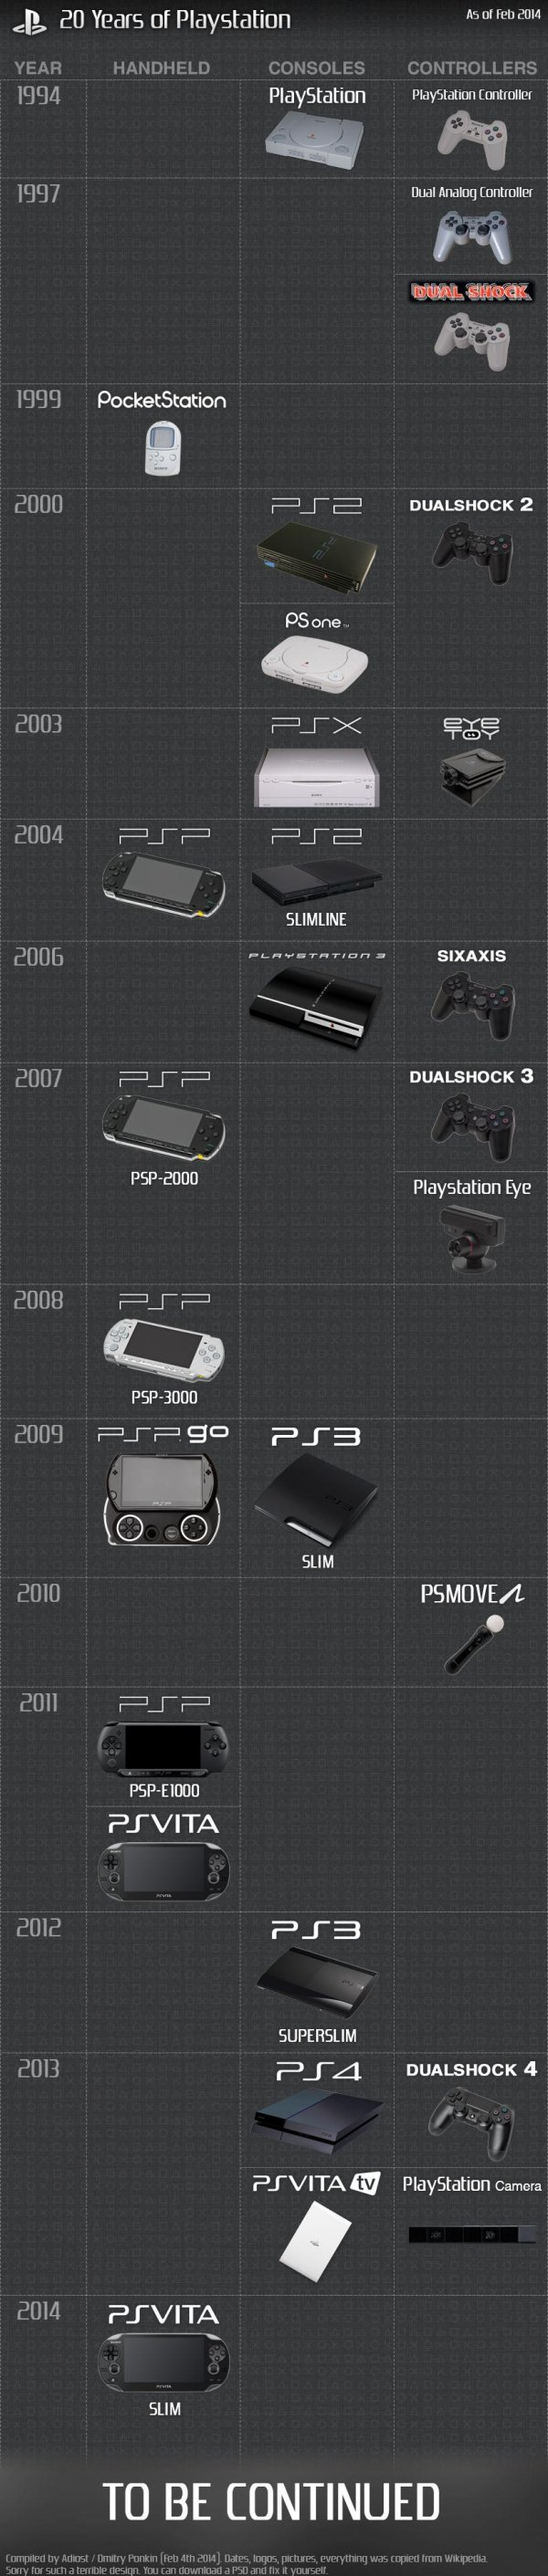 Sony PlayStation: The first 20 years